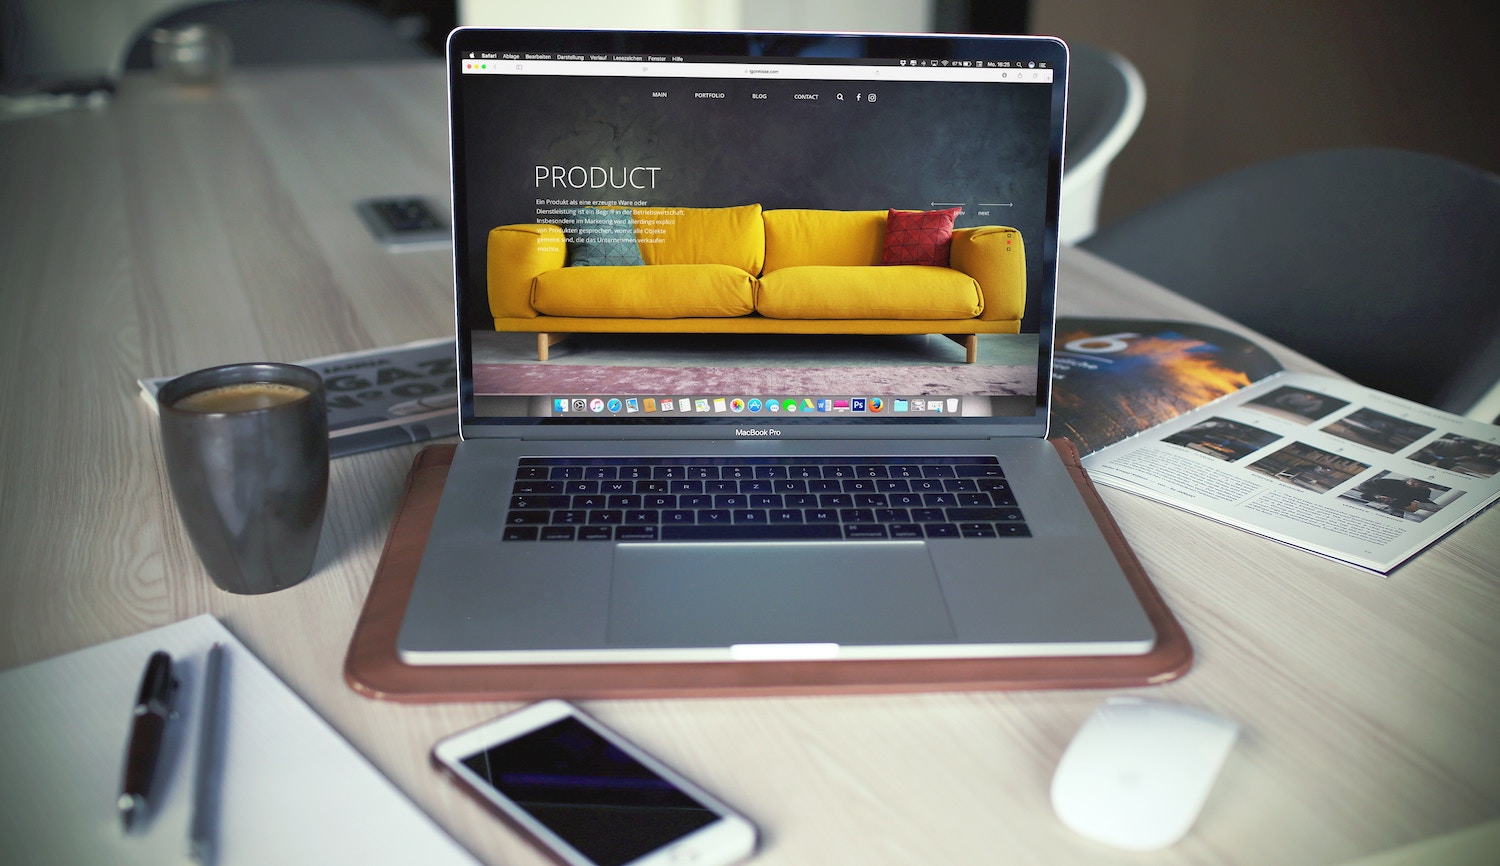 macbook on desk with mug of coffee smartphone notebook pen mouse and magazine